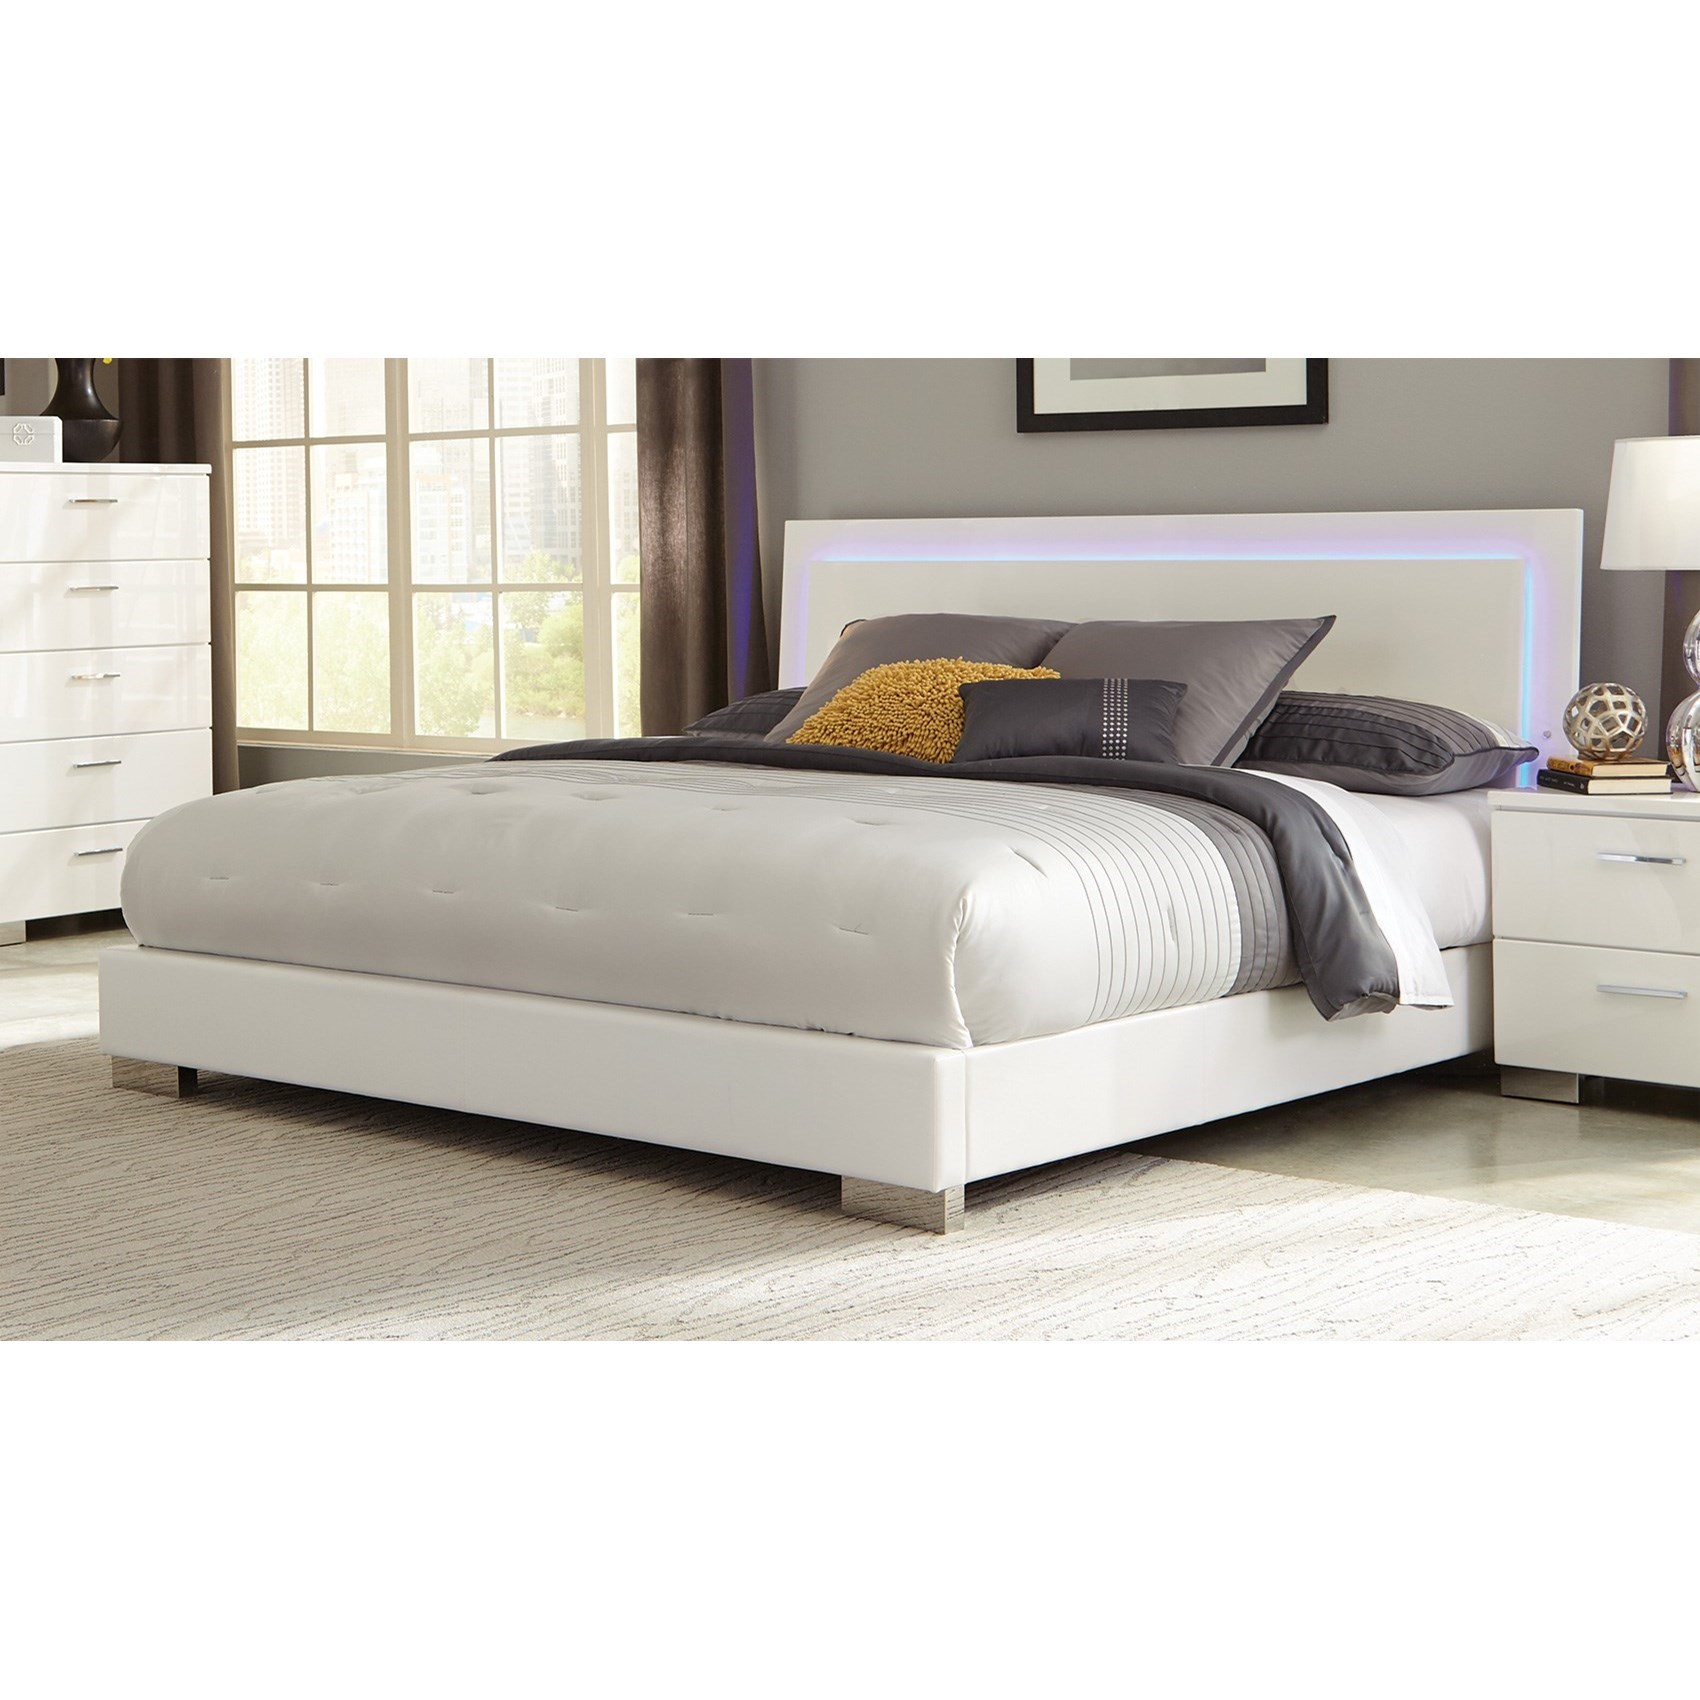 Very Low Platform Bed Coaster Felicity 203500q Queen Low Profile Bed With Led